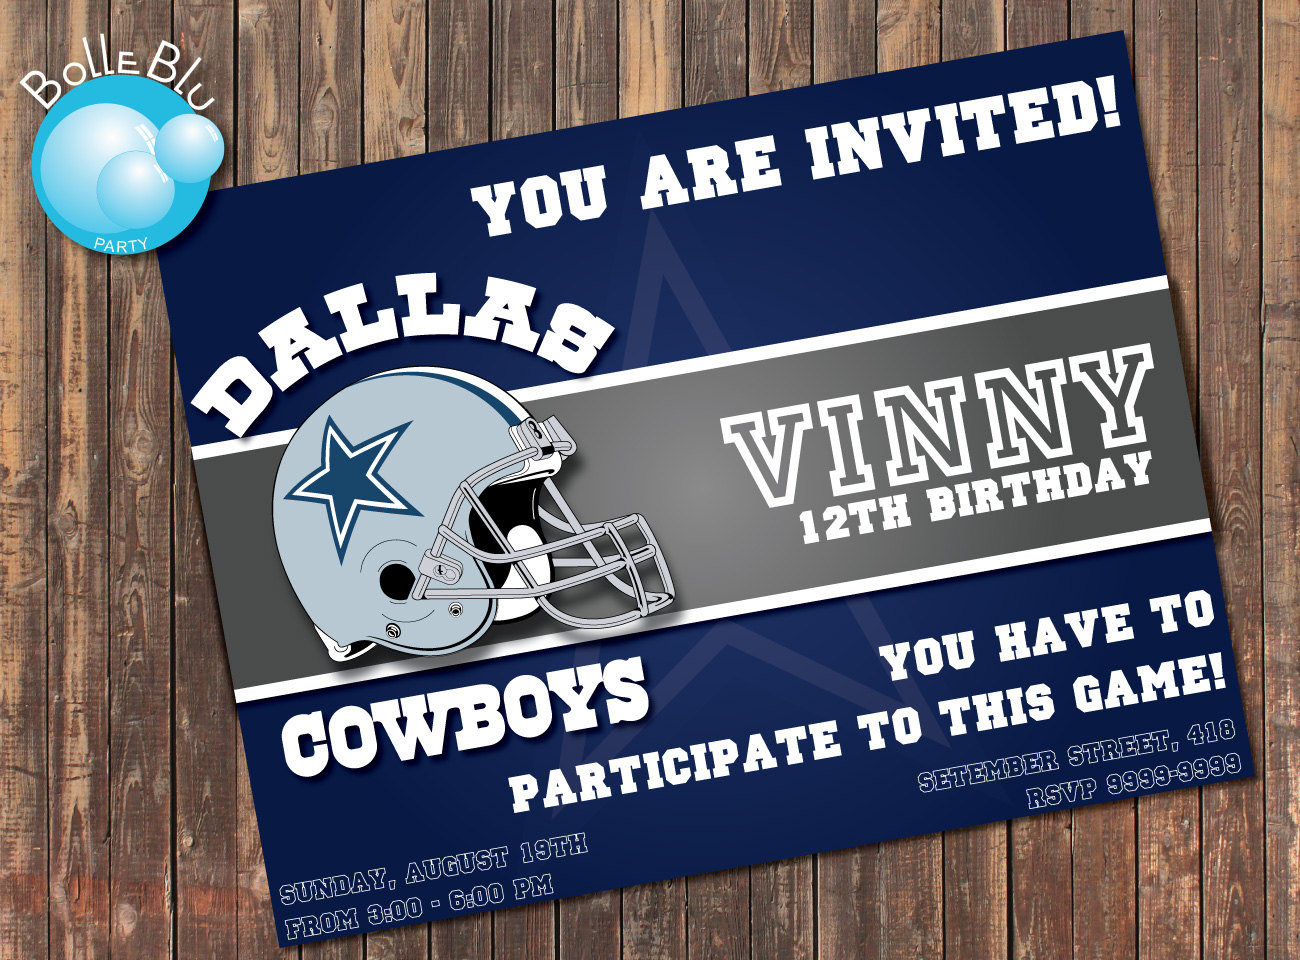 Dallas Cowboys Birthday Party Invitations - Free Printable Dallas Cowboys Birthday Invitations